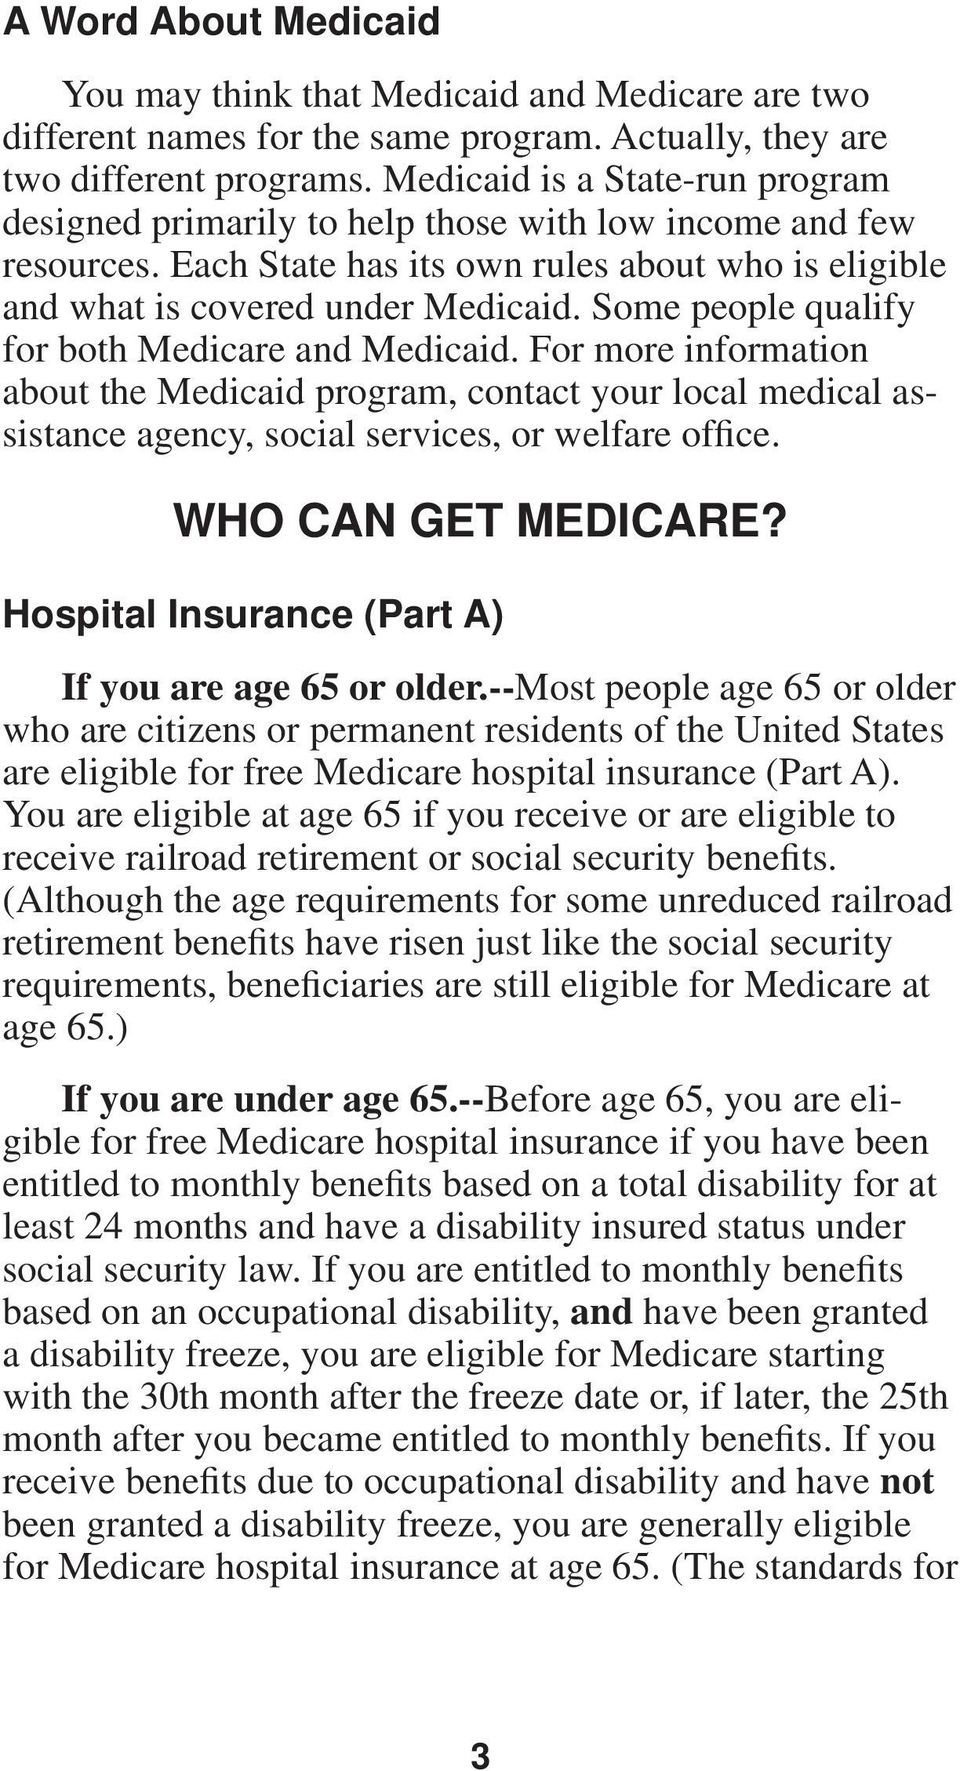 Some people qualify for both Medicare and Medicaid. For more information about the Medicaid program, contact your local medical assistance agency, social services, or welfare office.